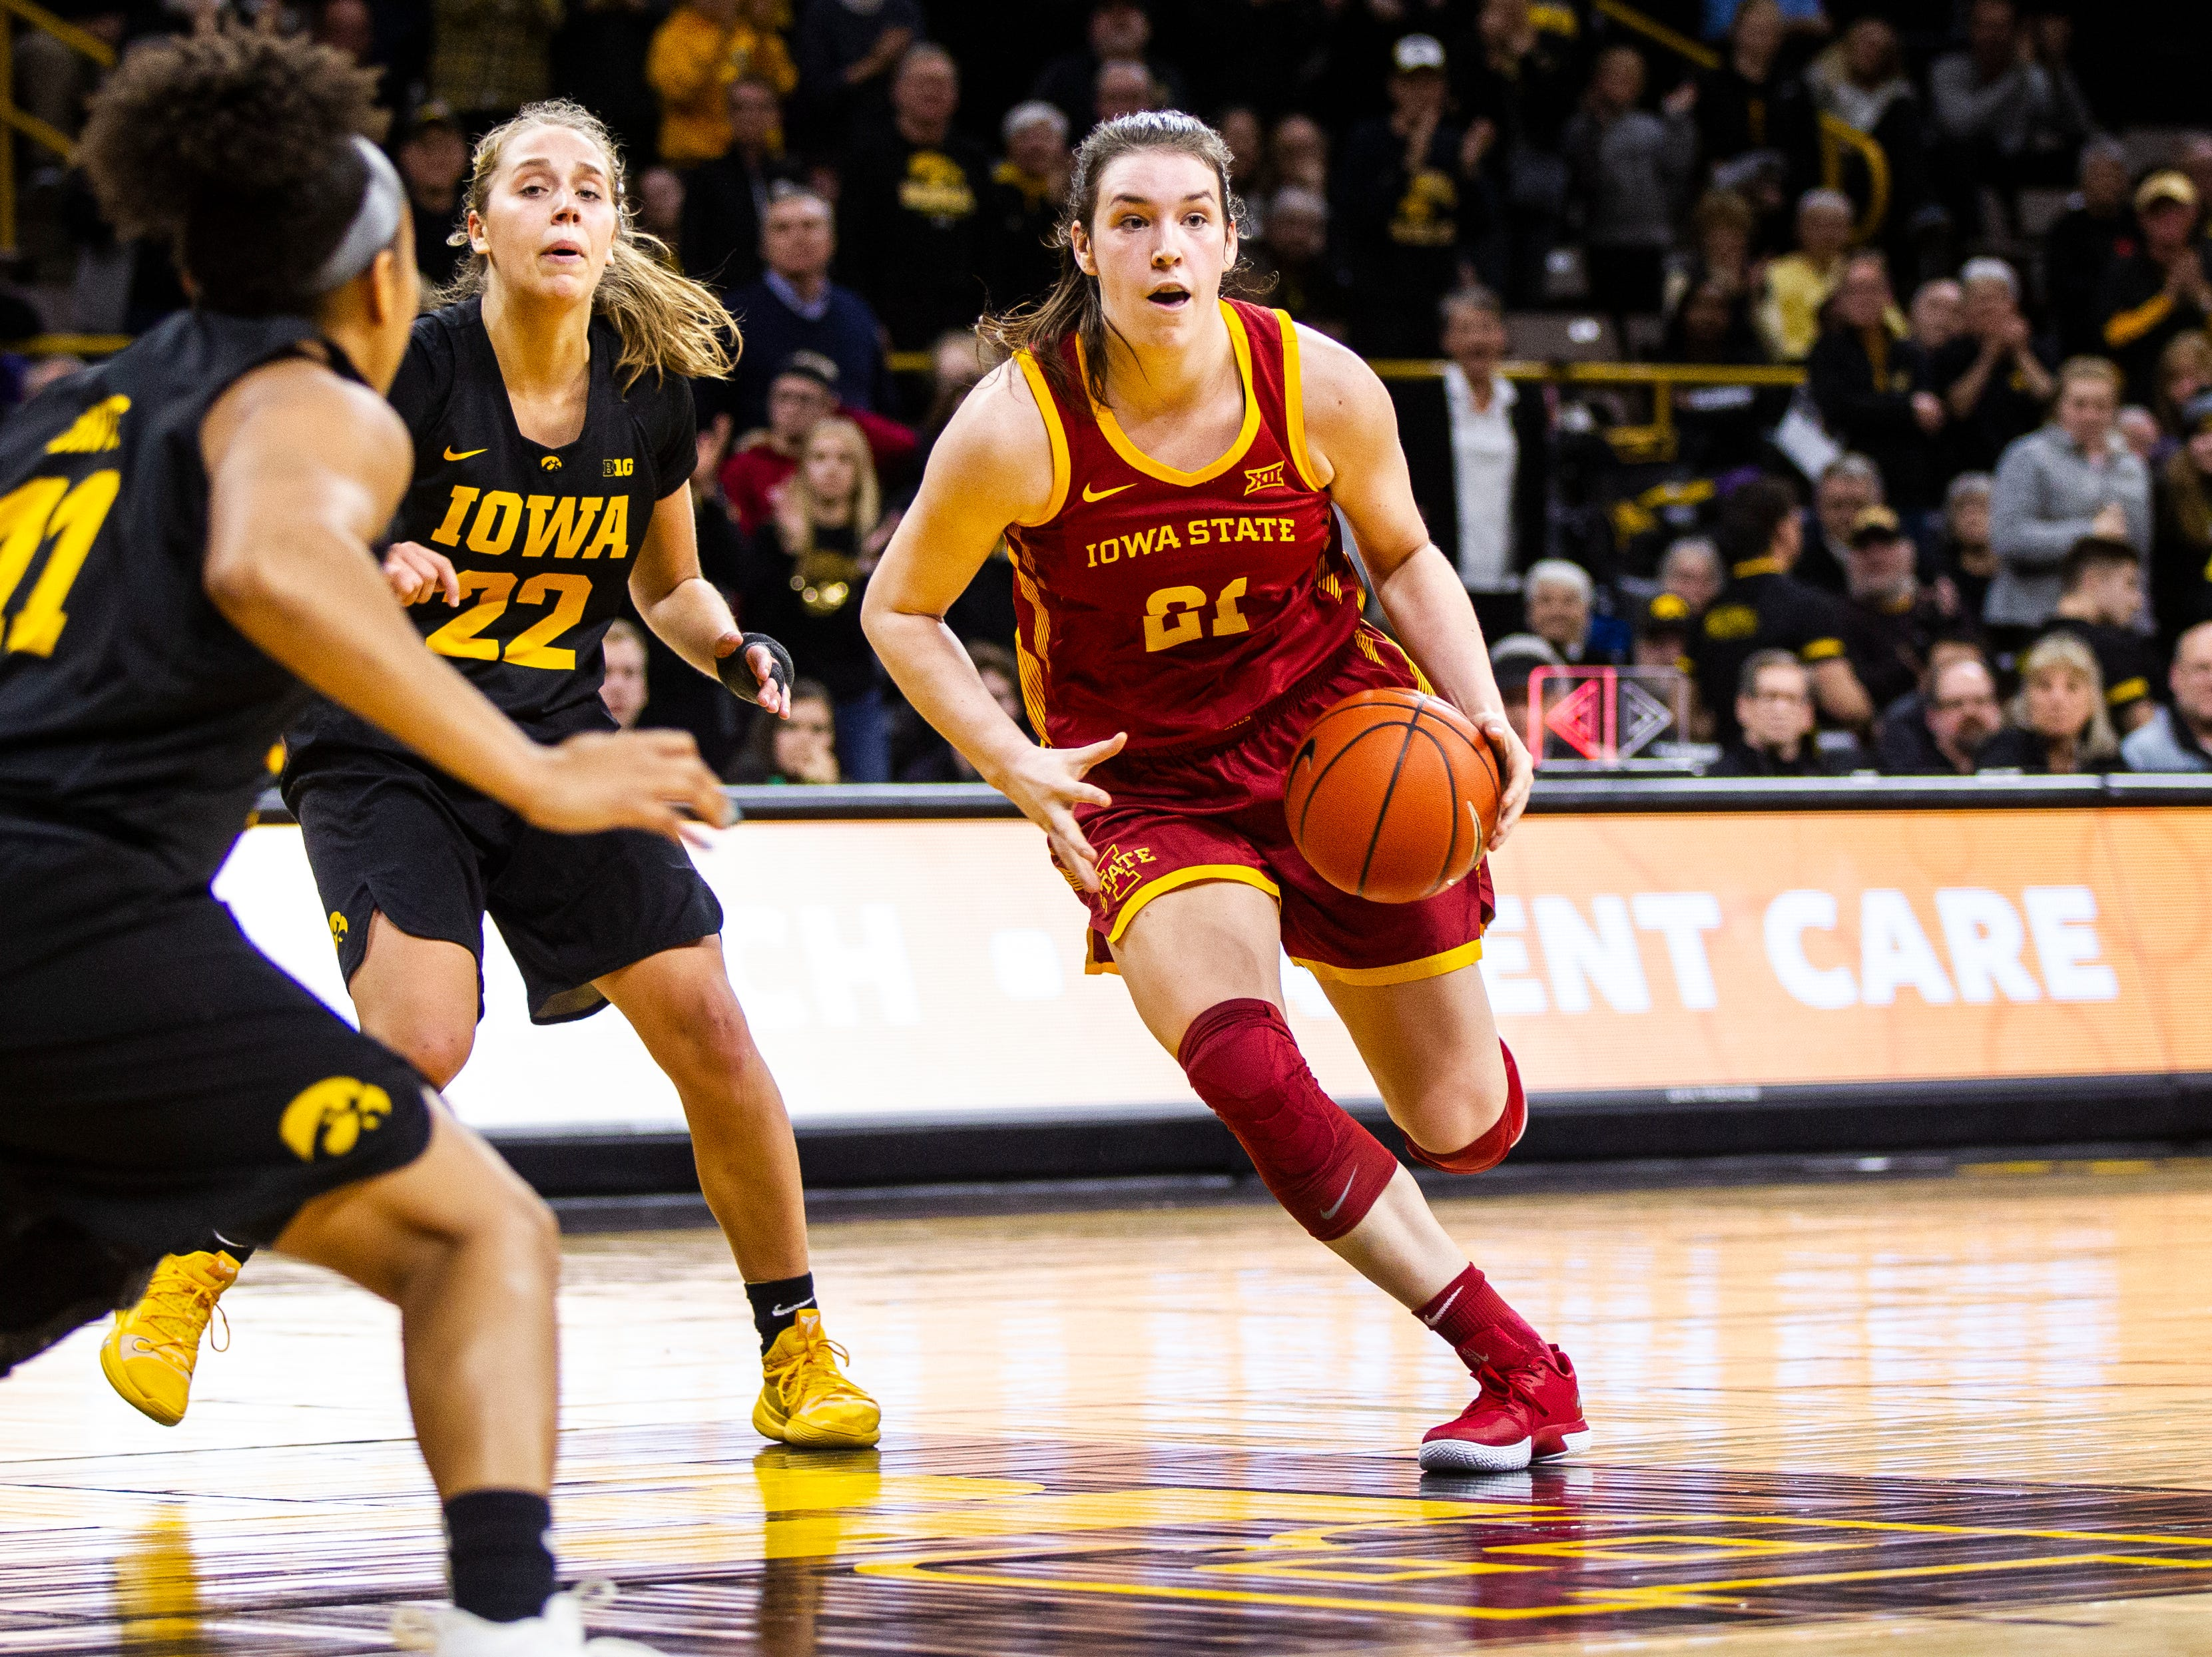 Iowa State guard Bridget Carleton (21) drives in the paint past Iowa guard Kathleen Doyle (22) during a Cy-Hawk series NCAA women's basketball game on Wednesday, Dec. 5, 2018, at Carver-Hawkeye Arena in Iowa City.